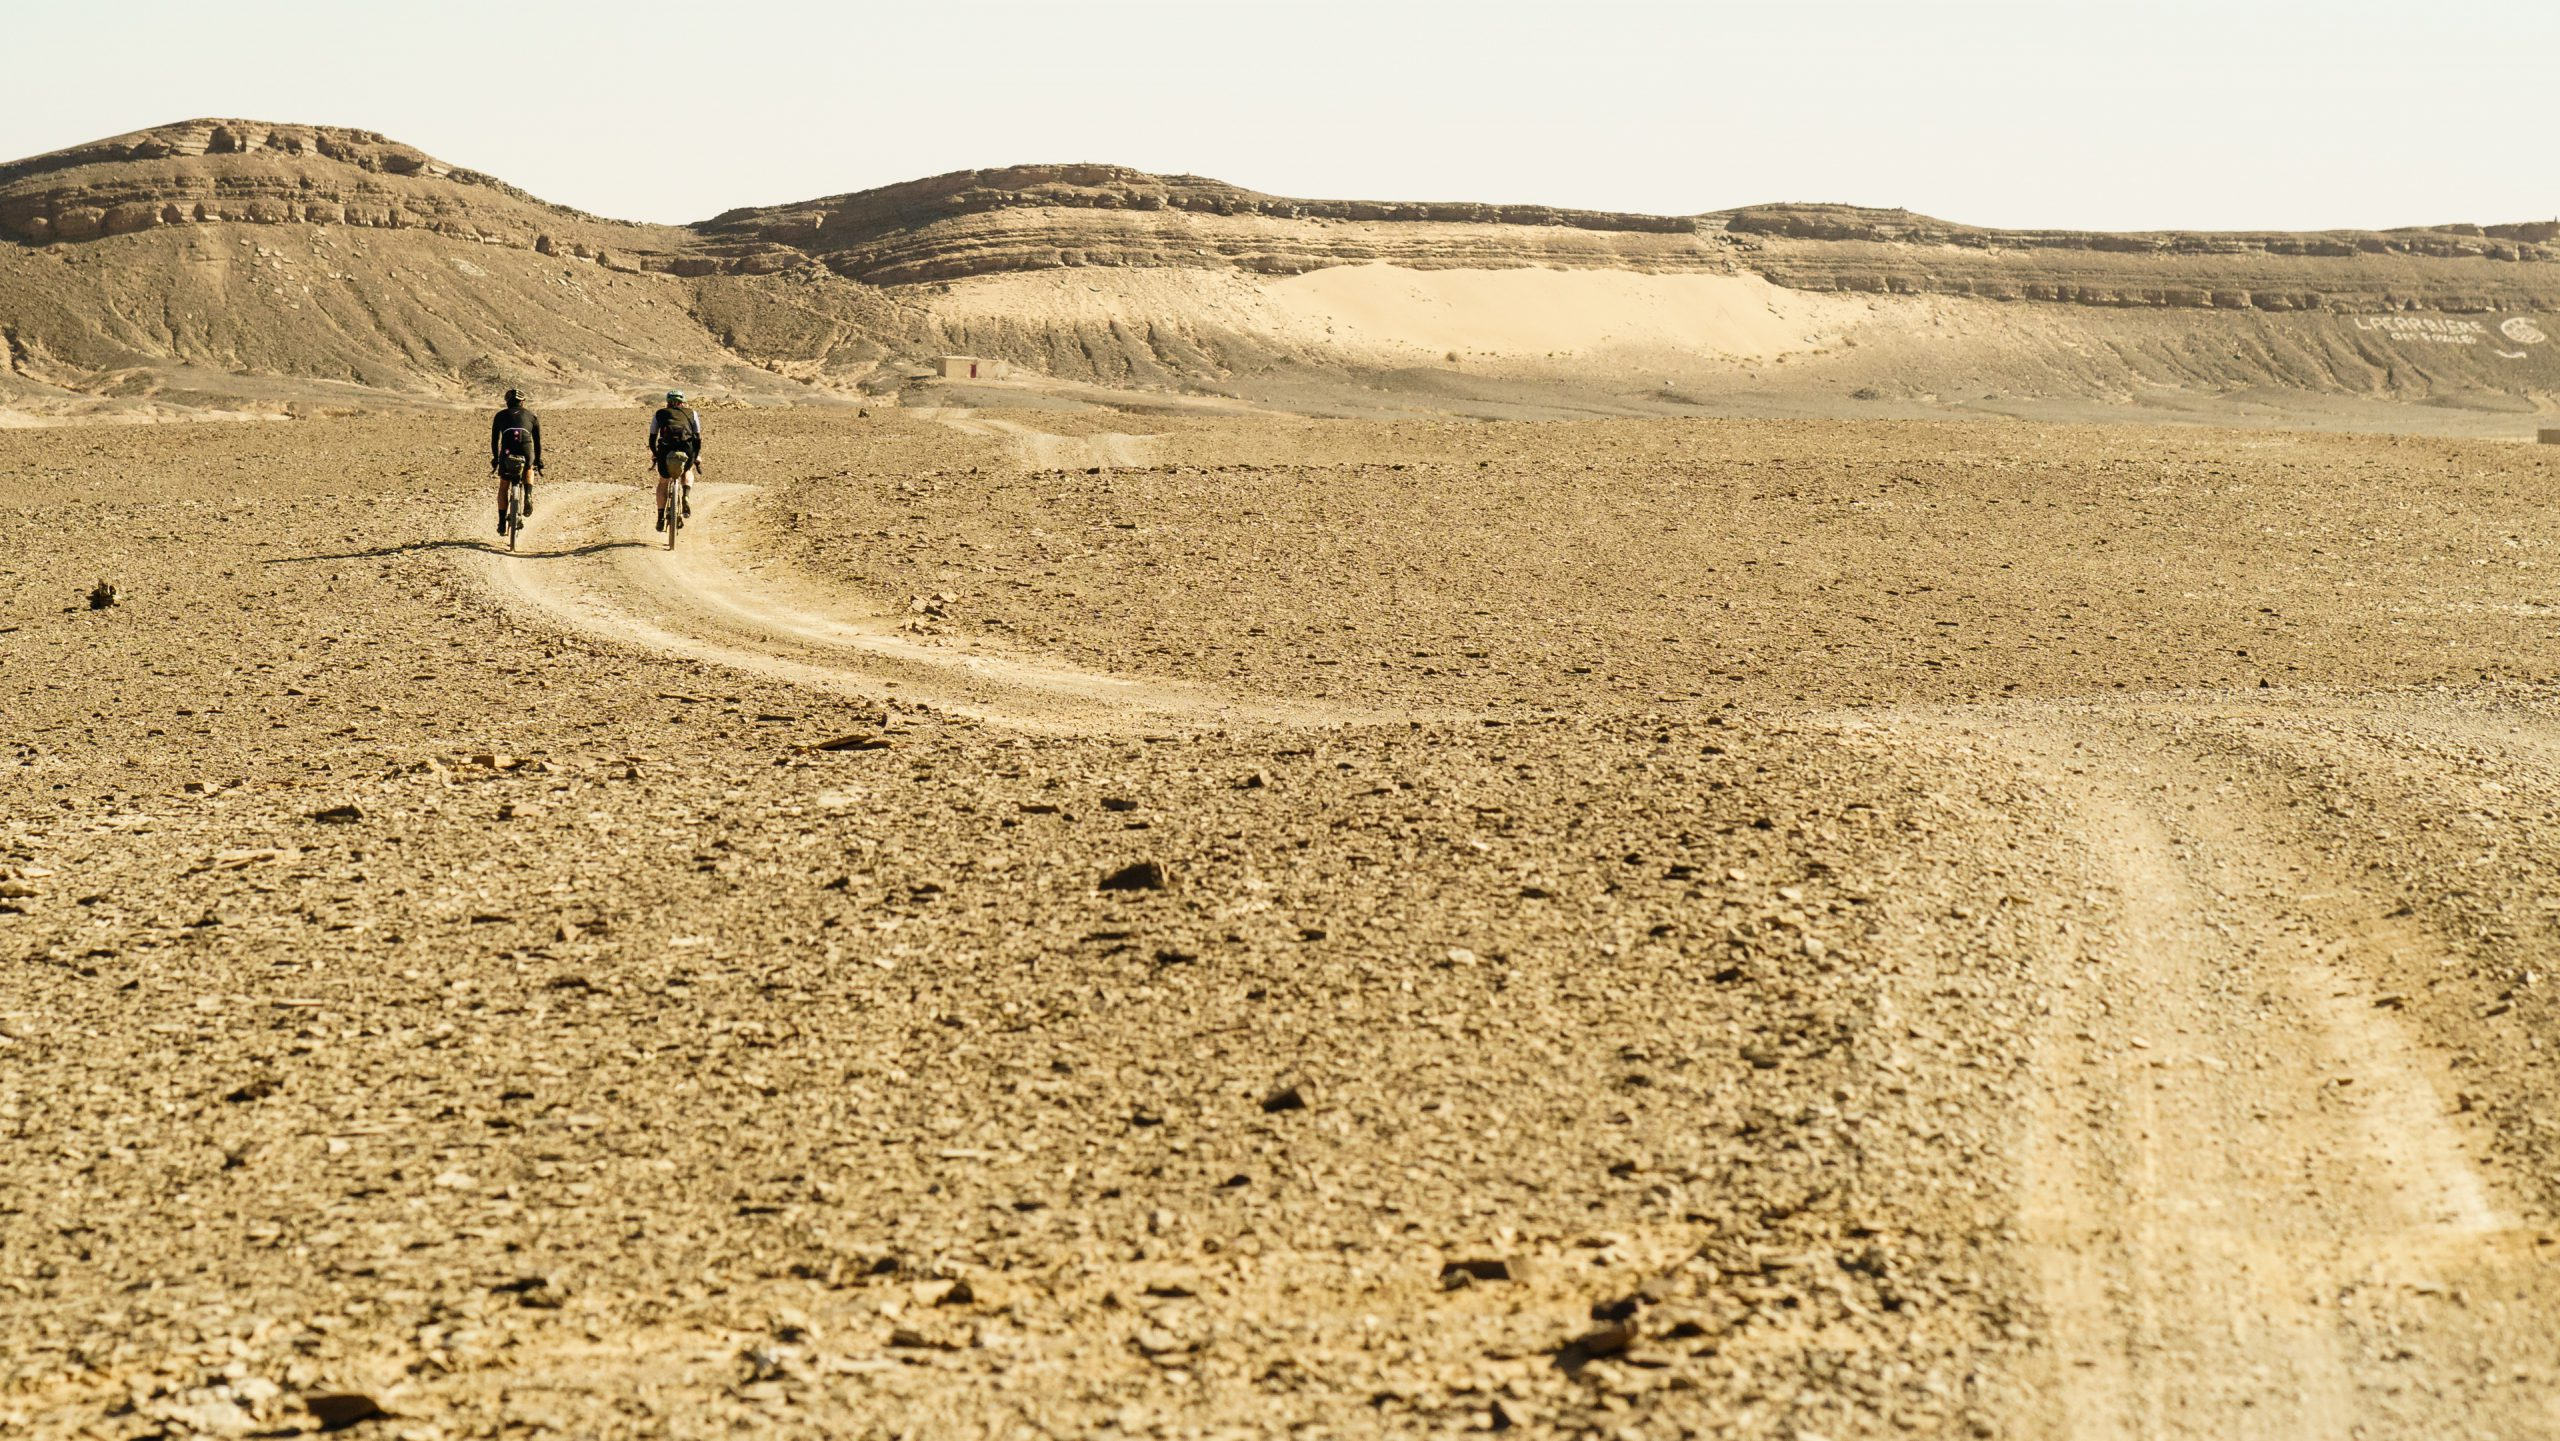 Cyclists riding in the desert